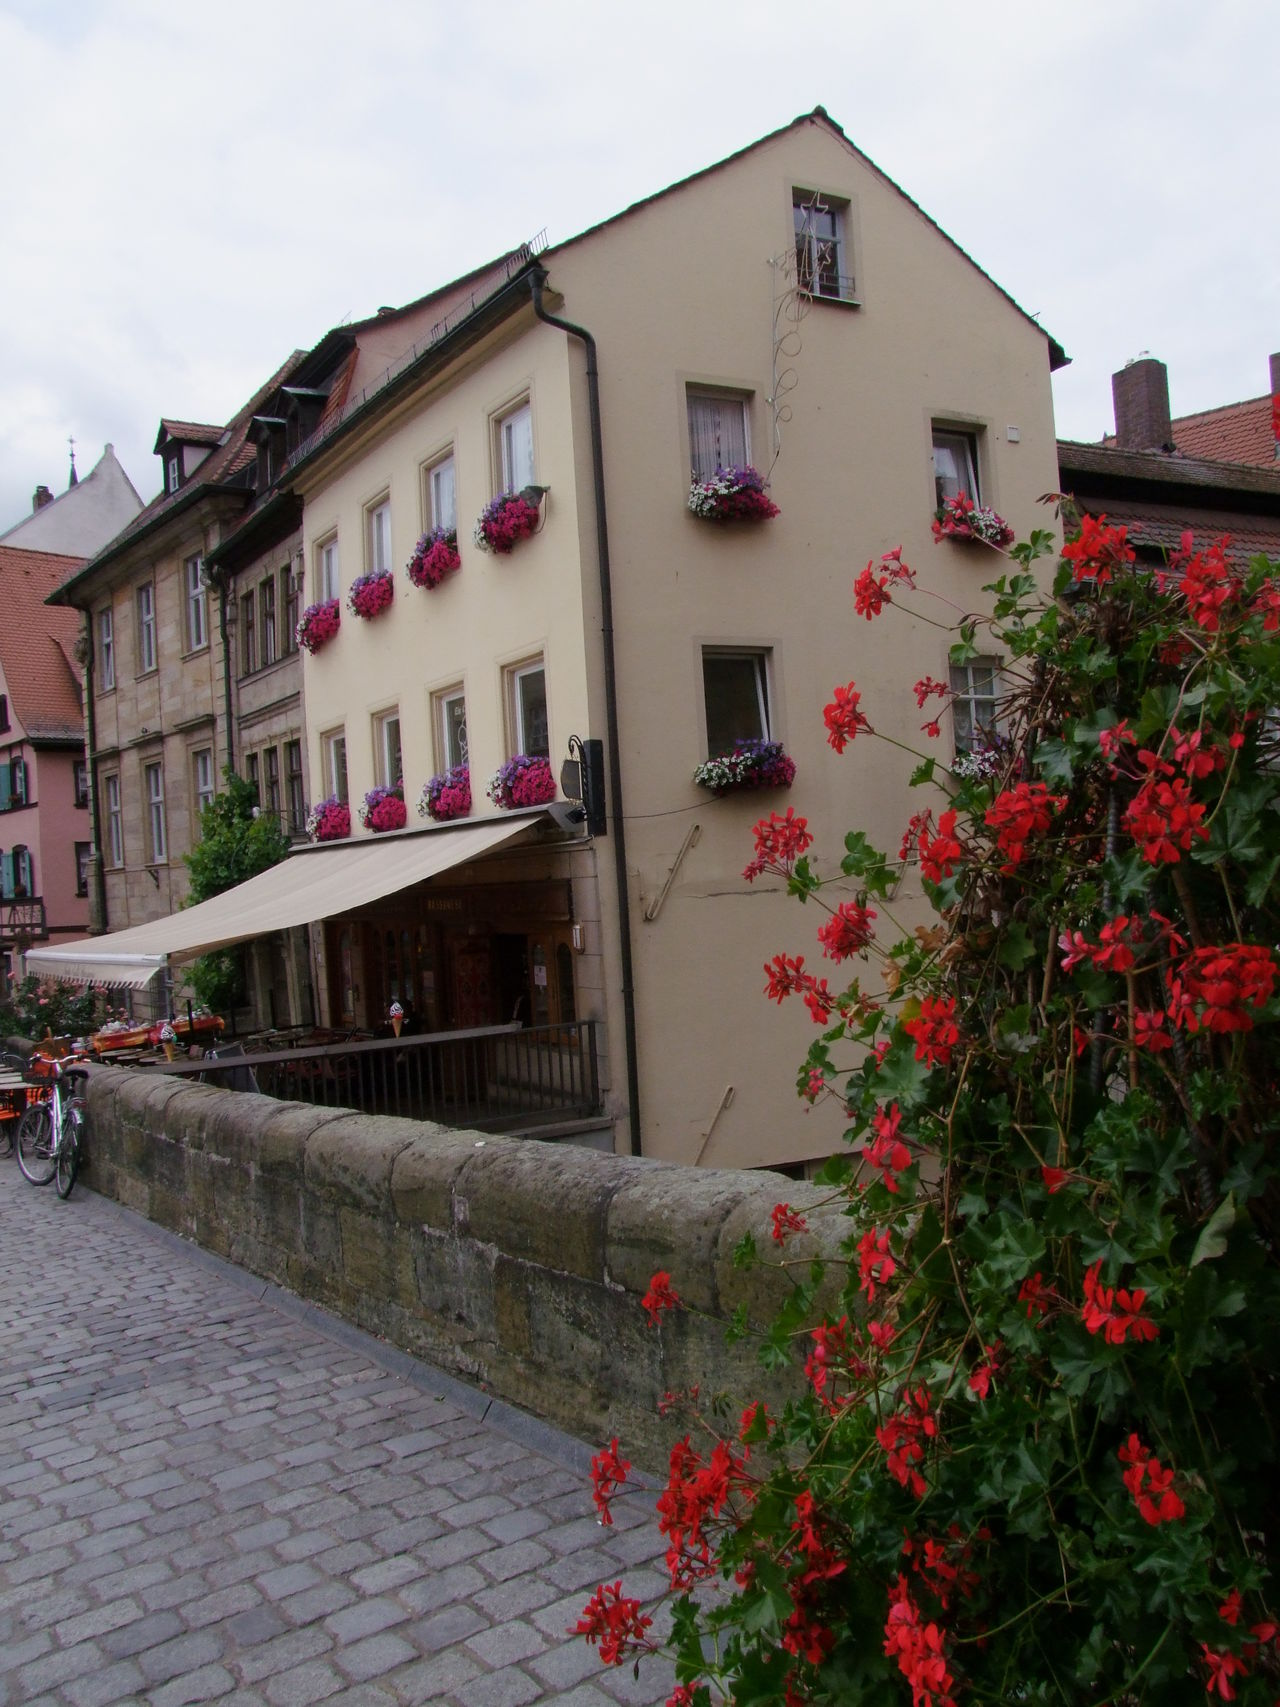 Bamburg Street Architecture Bamburgh Beauty In Nature Bridge Building Exterior Buildings Built Structure Cloudy Sky Cobblestones Composition Façade Flowers Full Frame Germany No People Outdoor Photography Plant Quaint  Quaint Perspective Red Residential Building Shop Toruism Tourist Destination Town